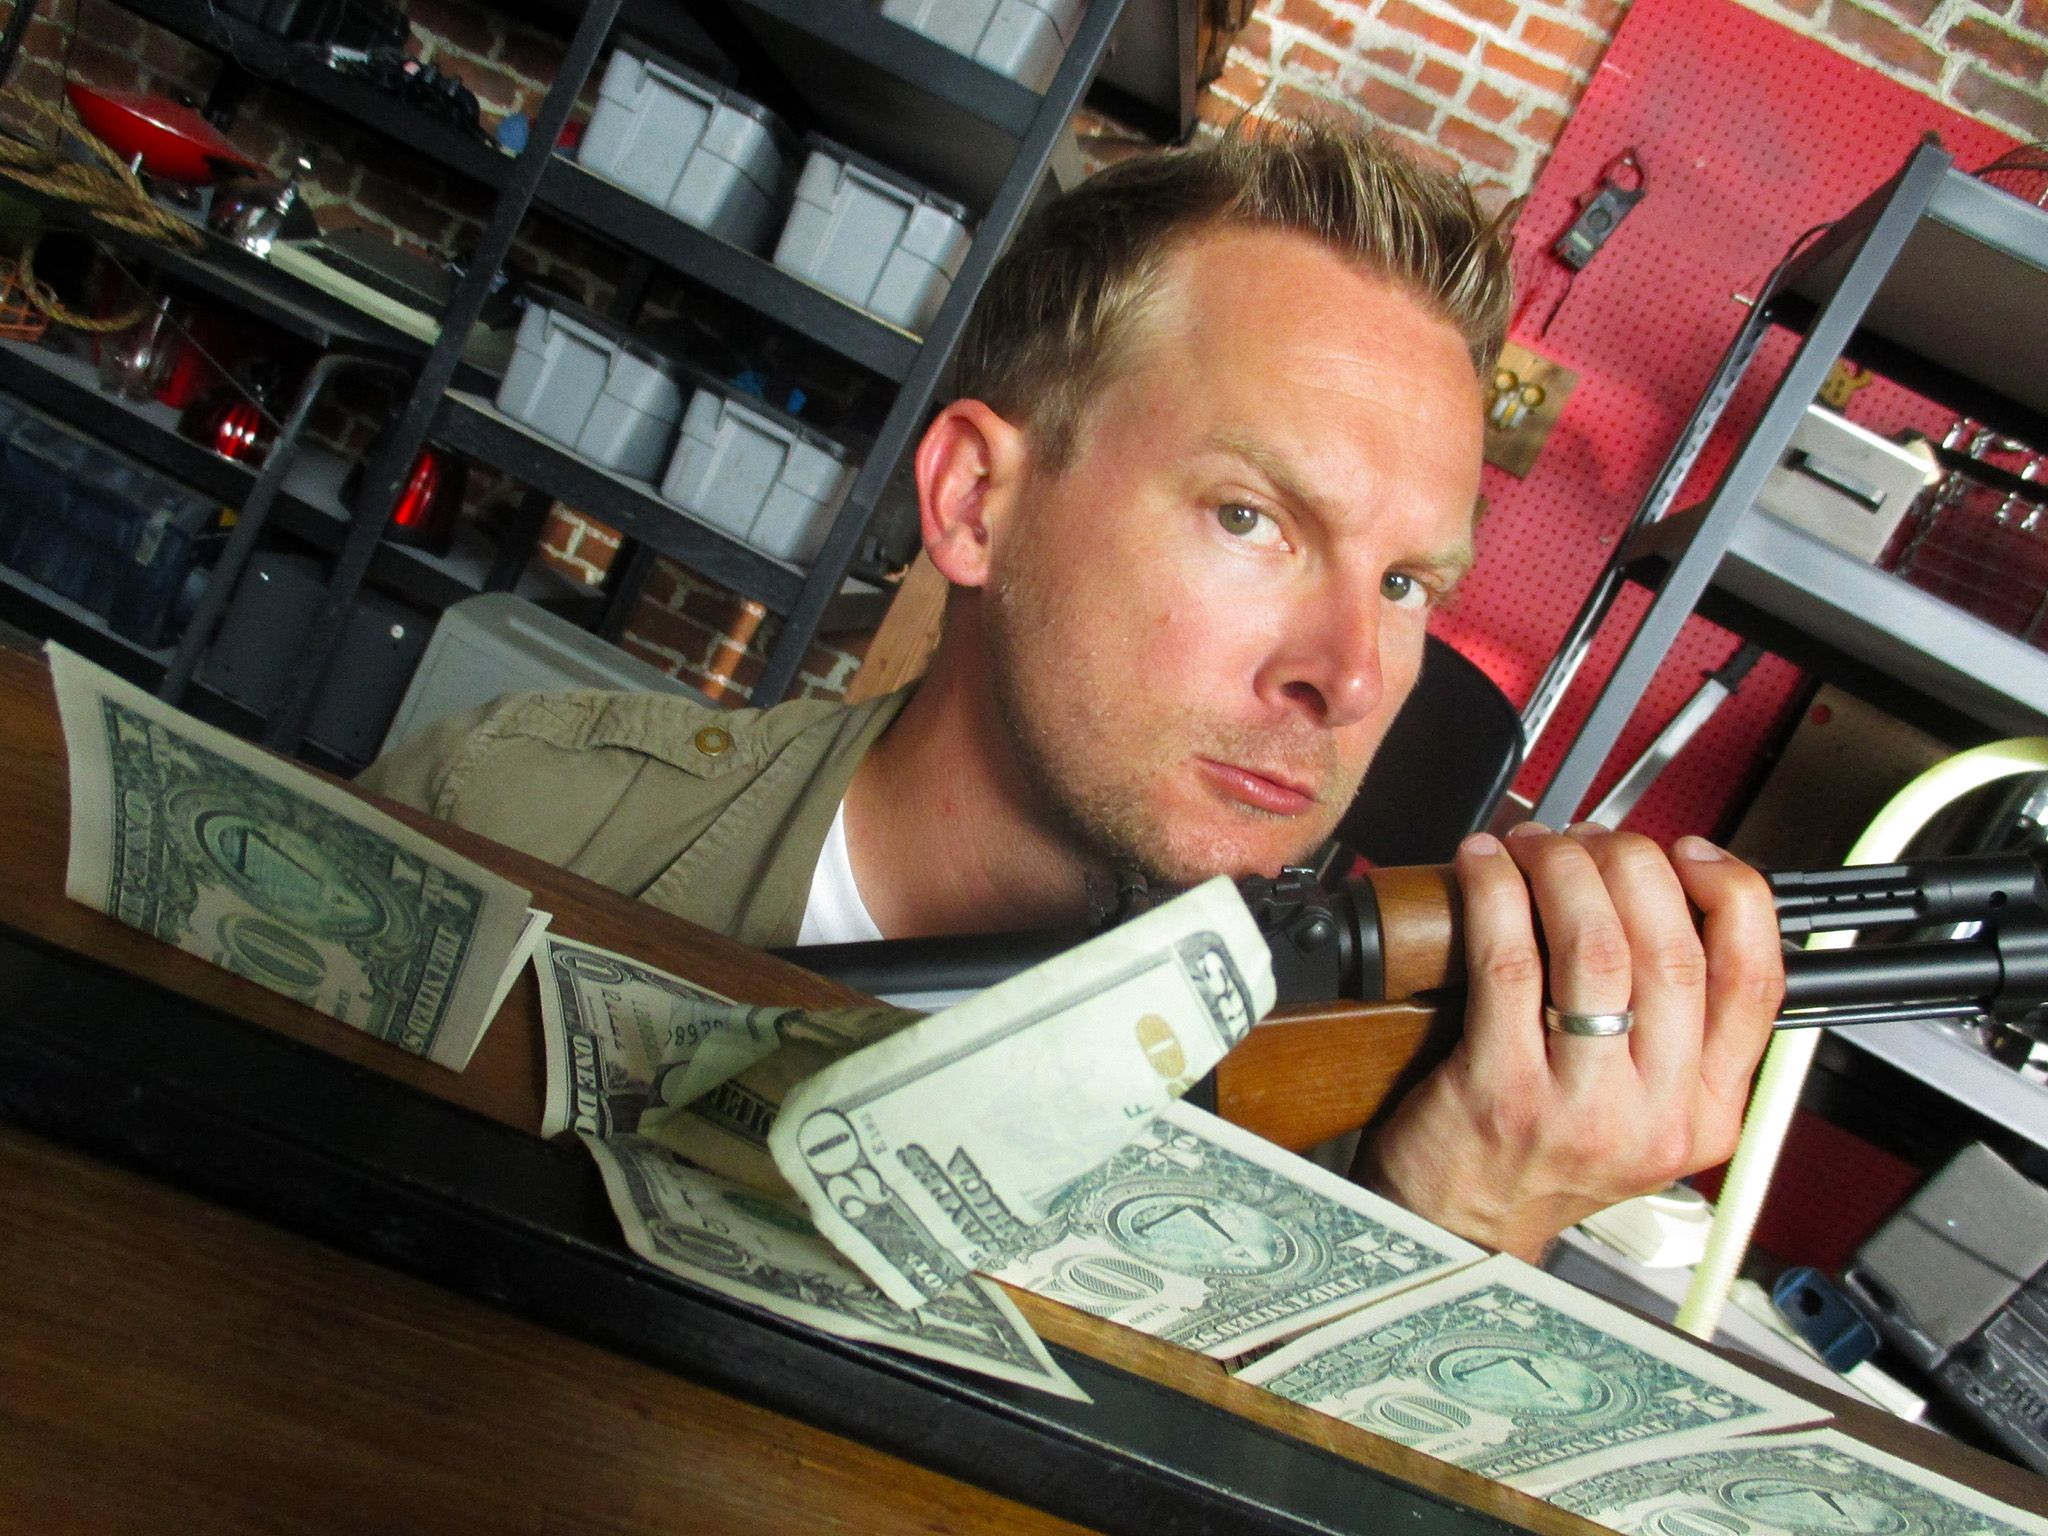 Los Angeles, CA.: In the workshop, Brian poses with a rifle next to a line of bills and a... [Foto del día - abril 2015]